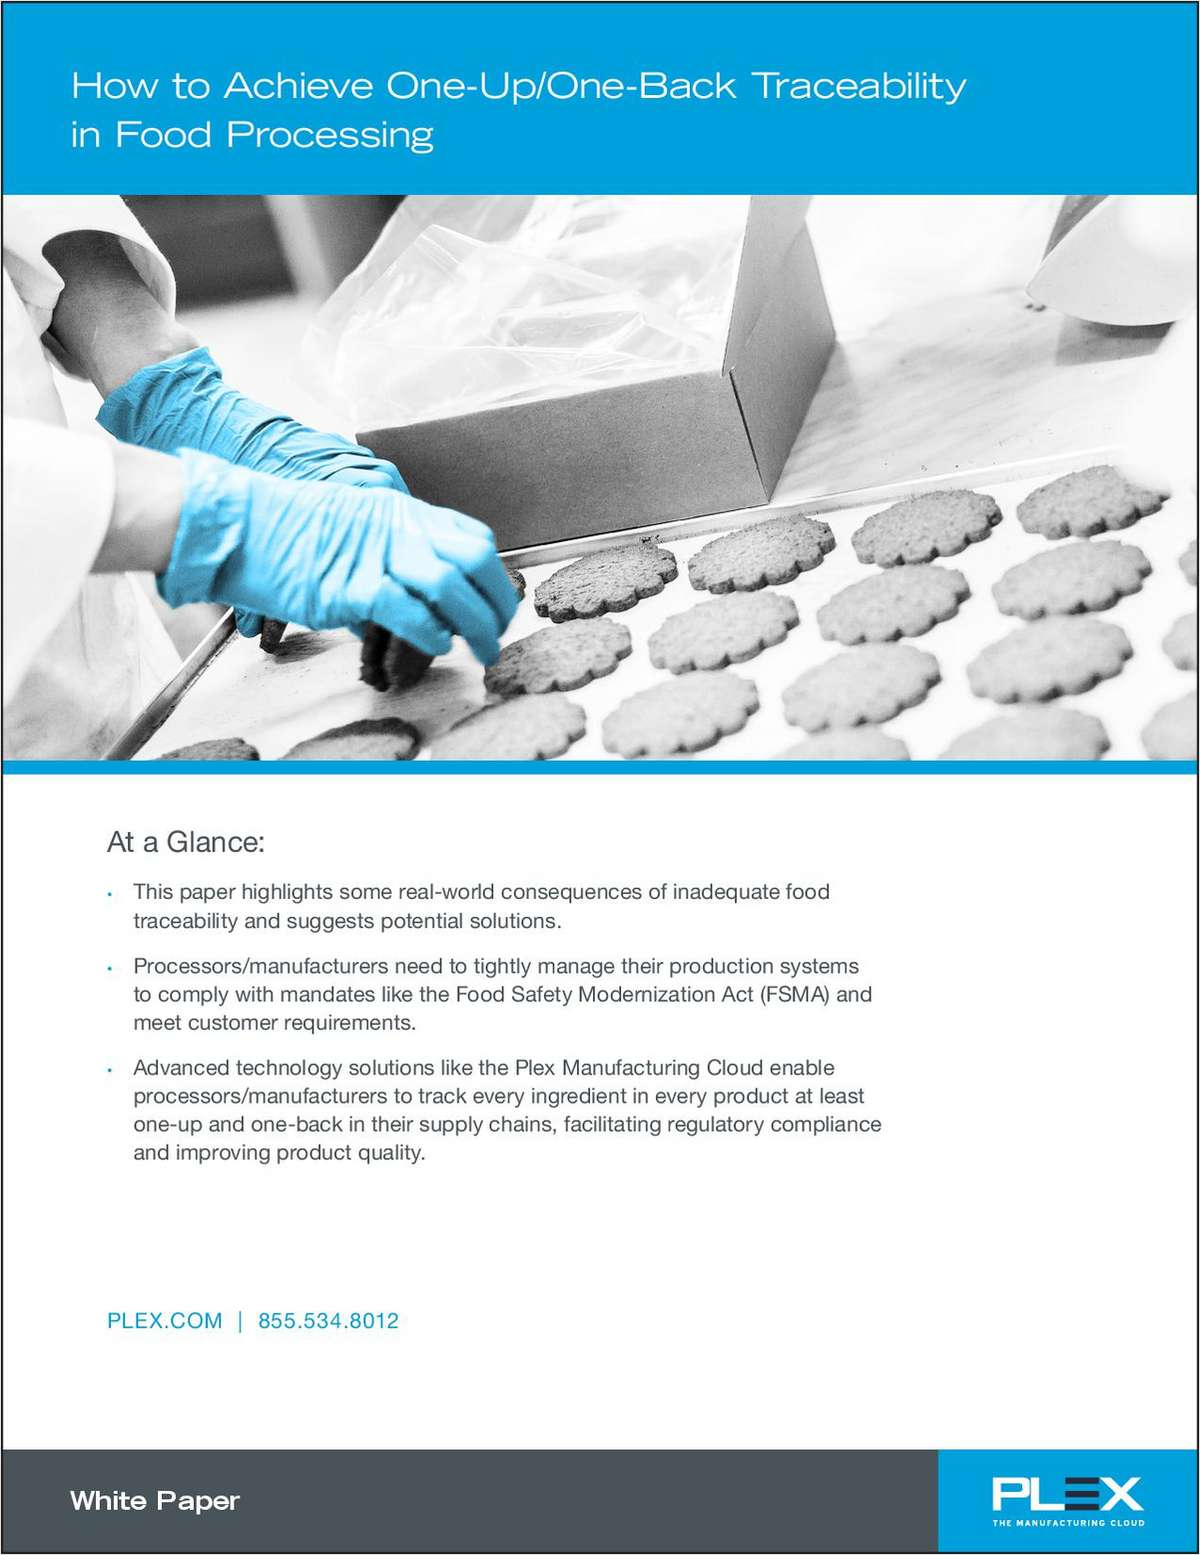 Achieve One-Up/One-Back Traceability in Food Processing